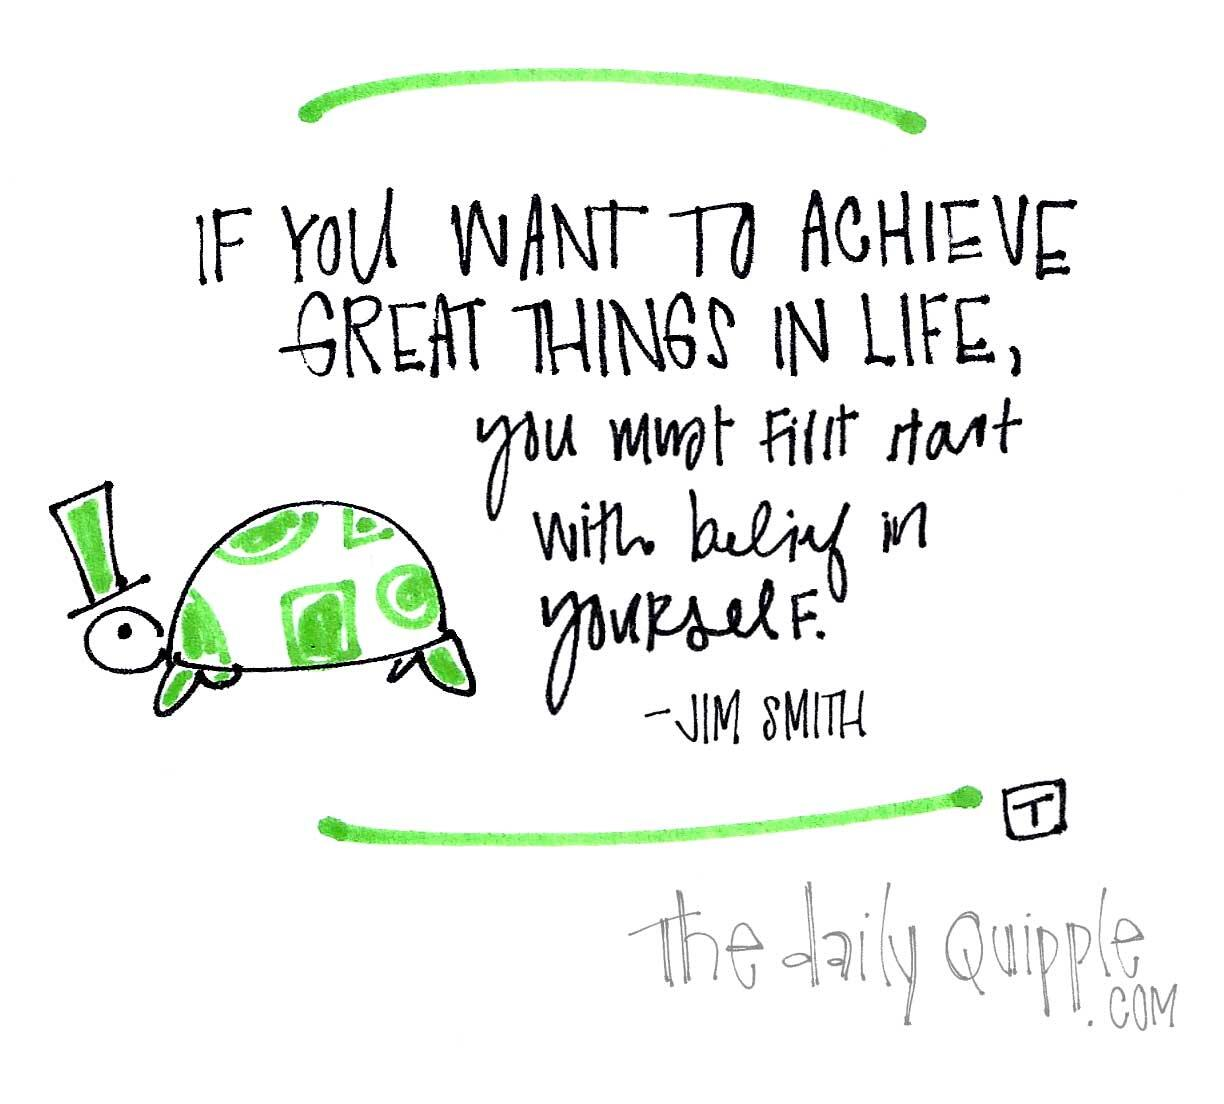 If you want to achieve great things in life, you must first start with belief in yourself. -Jim Smith. #youcandothis http://t.co/x3HEHYd1Rp